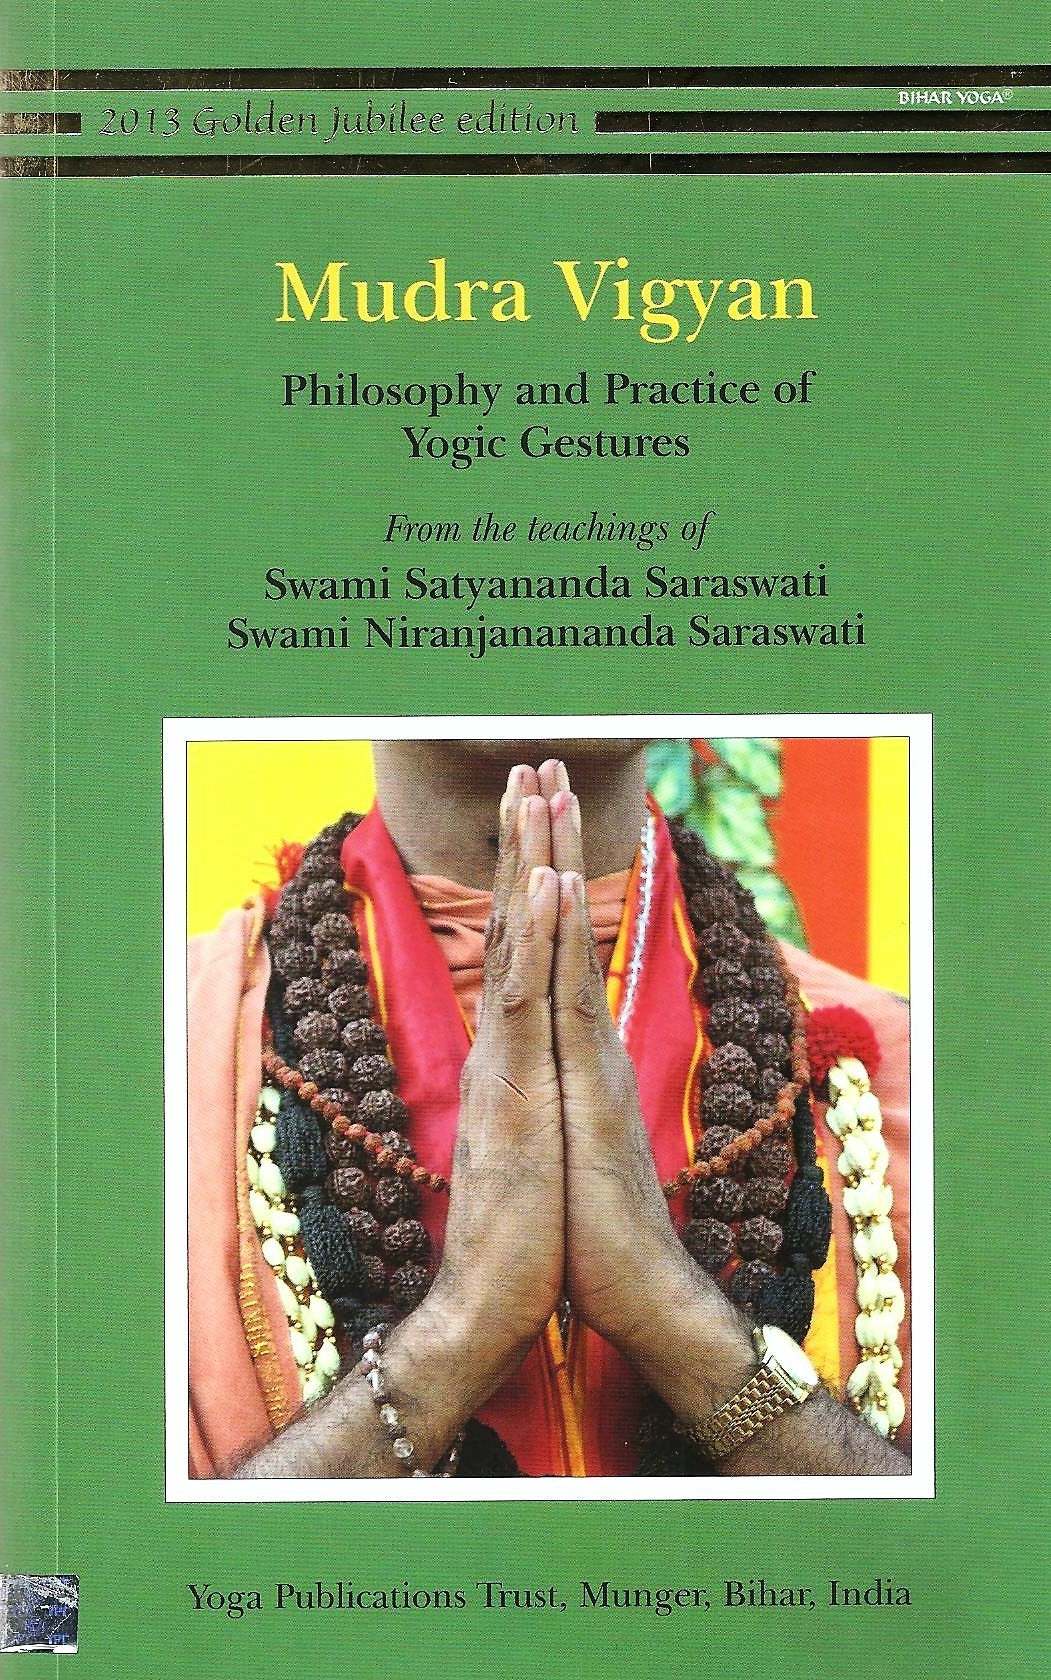 Mudra Vigyan: Philosophy & Practice of Yogic Gestures